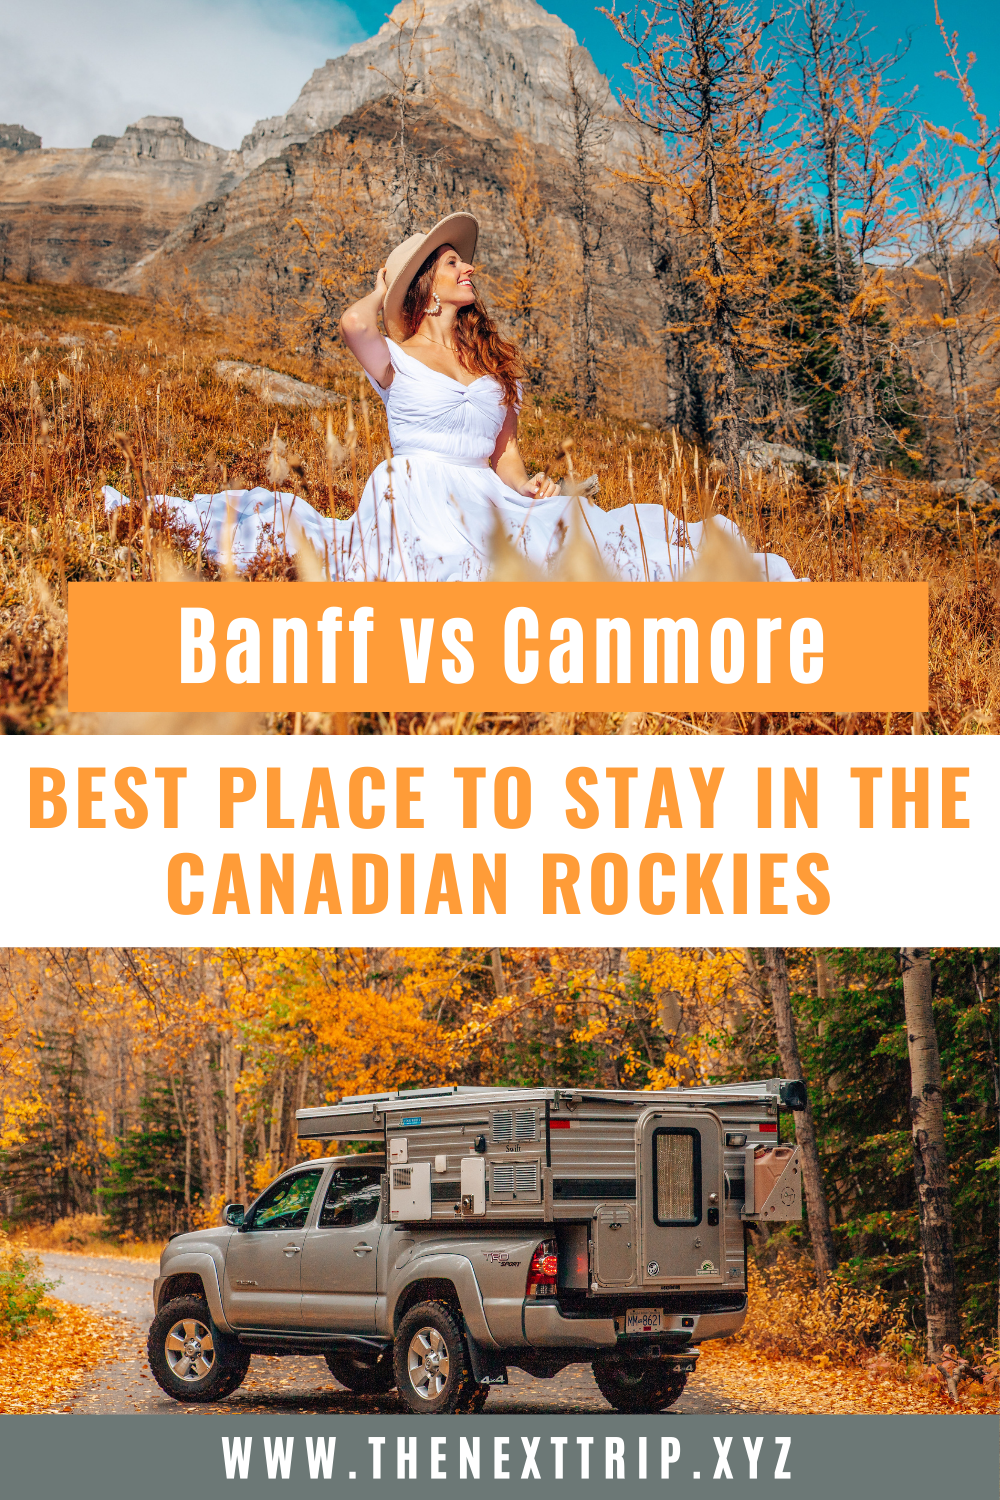 Canmore vs Banff - the best place to stay as a base to explore the Canadian Rockies, what to do in each town, and most frequently answered questions. | Banff vs Canmore | What to see in Canmore | What to see in Banff | Moraine Lake | Lake Louise | Things to do in Banff | Things to do in Canmore